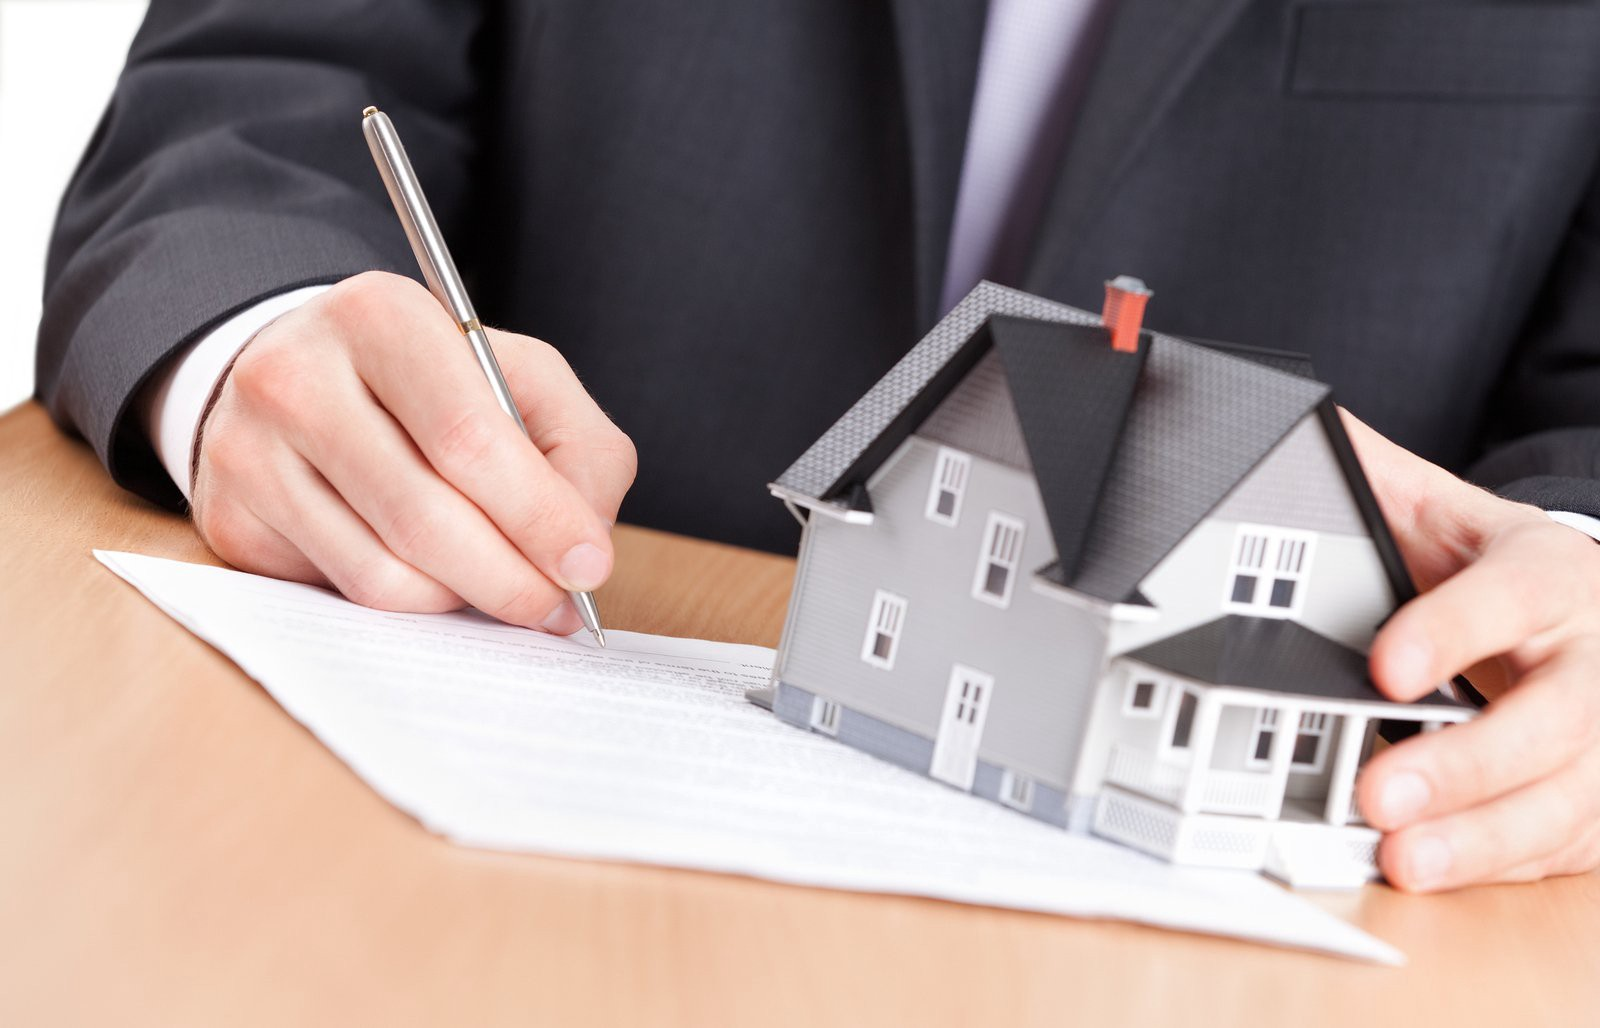 What to Consider When Choosing a Real Estate Lawyer